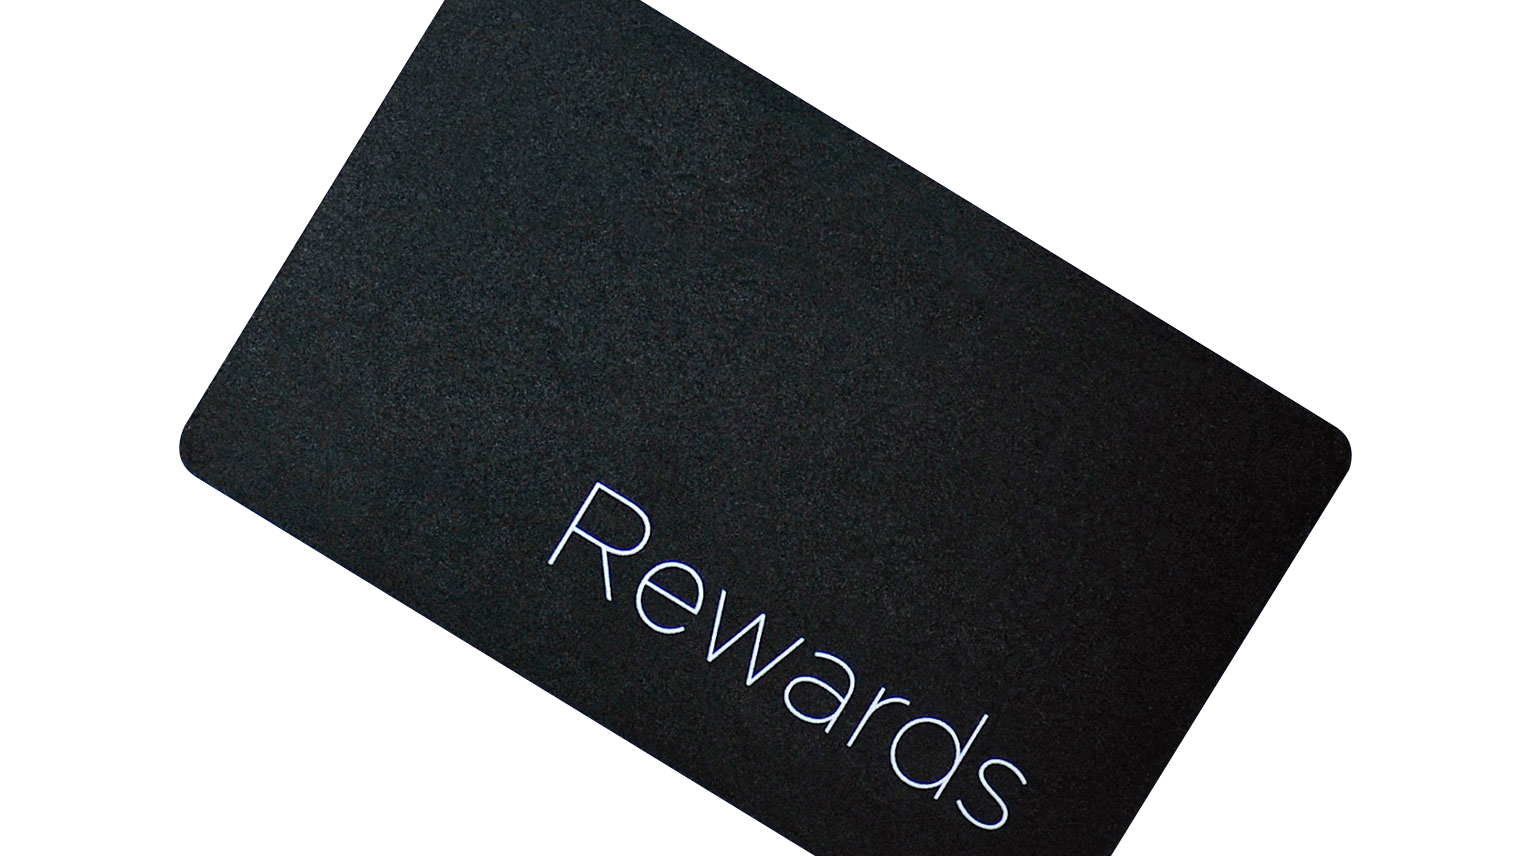 Integrate with Rewards Programs